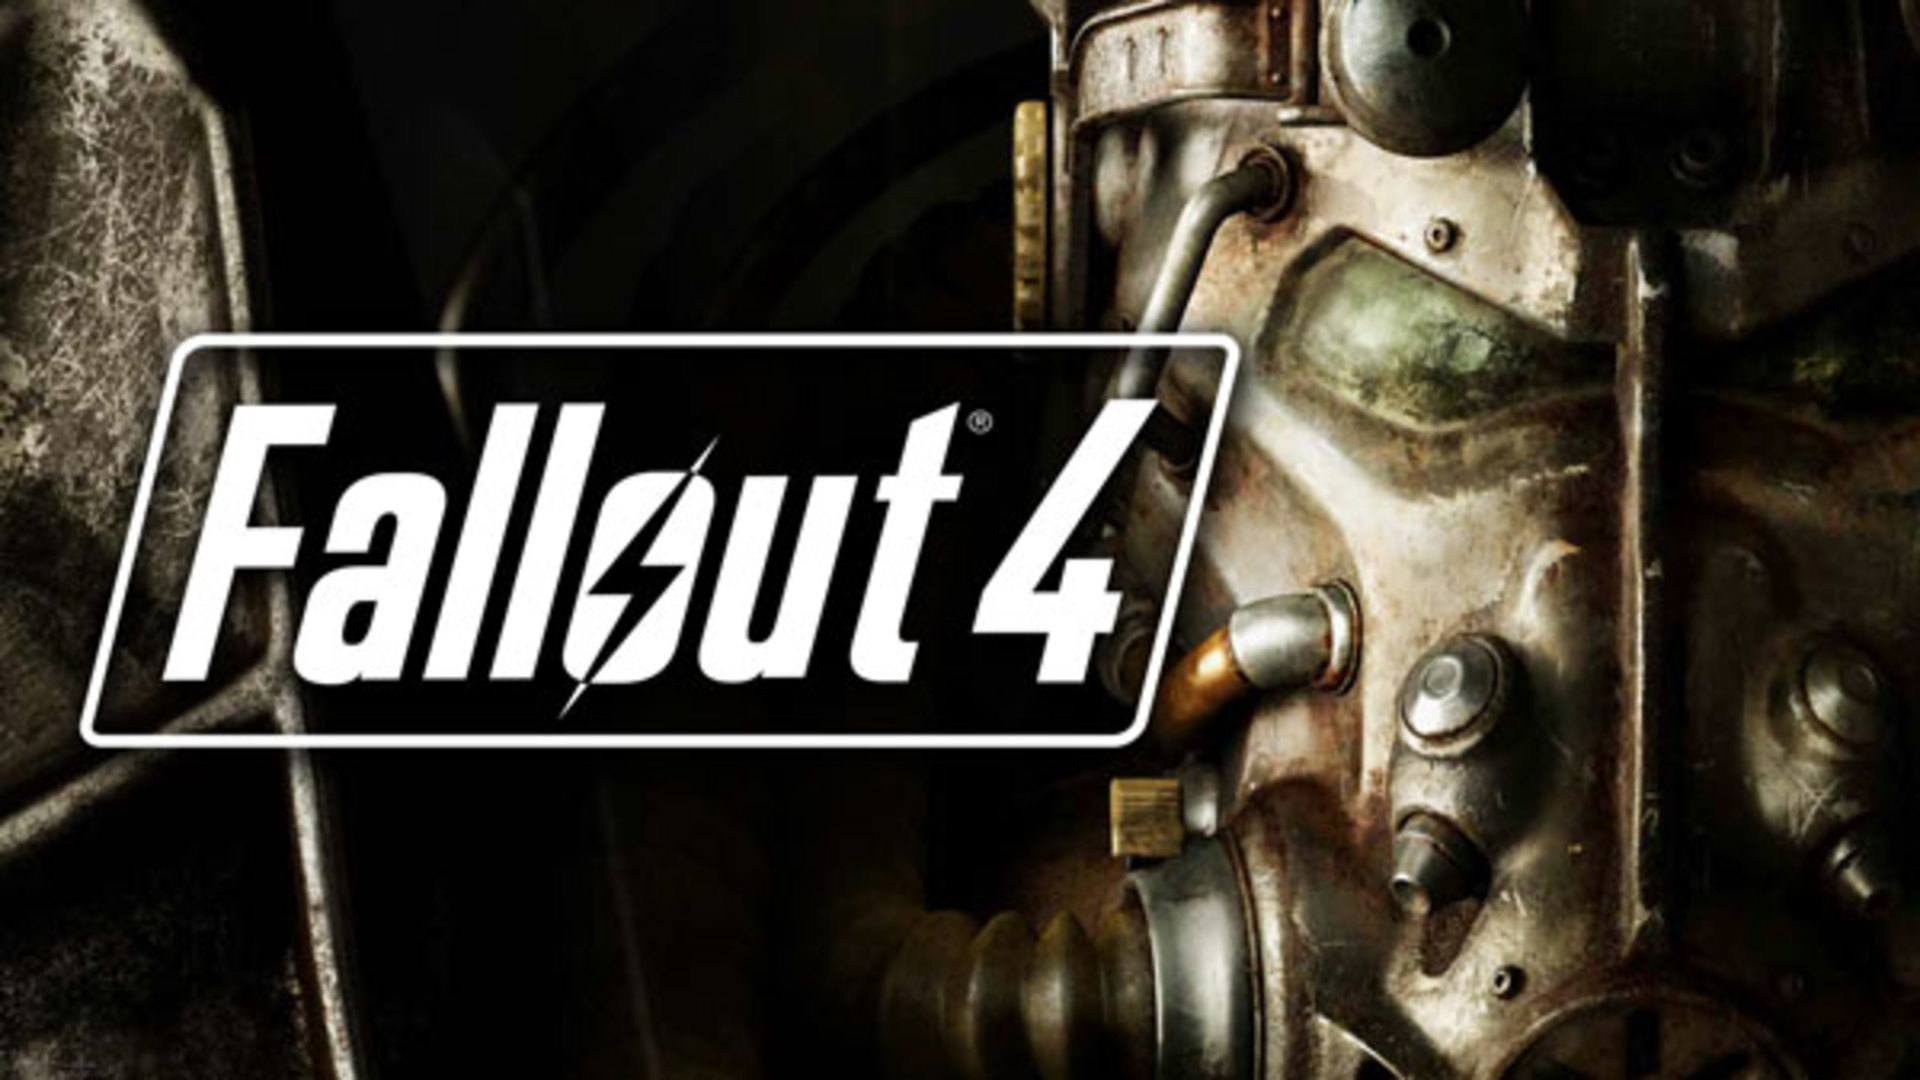 Fallout 4 Version 1.32 Full Patch Notes PS4 Xbox One PC Full Details Here